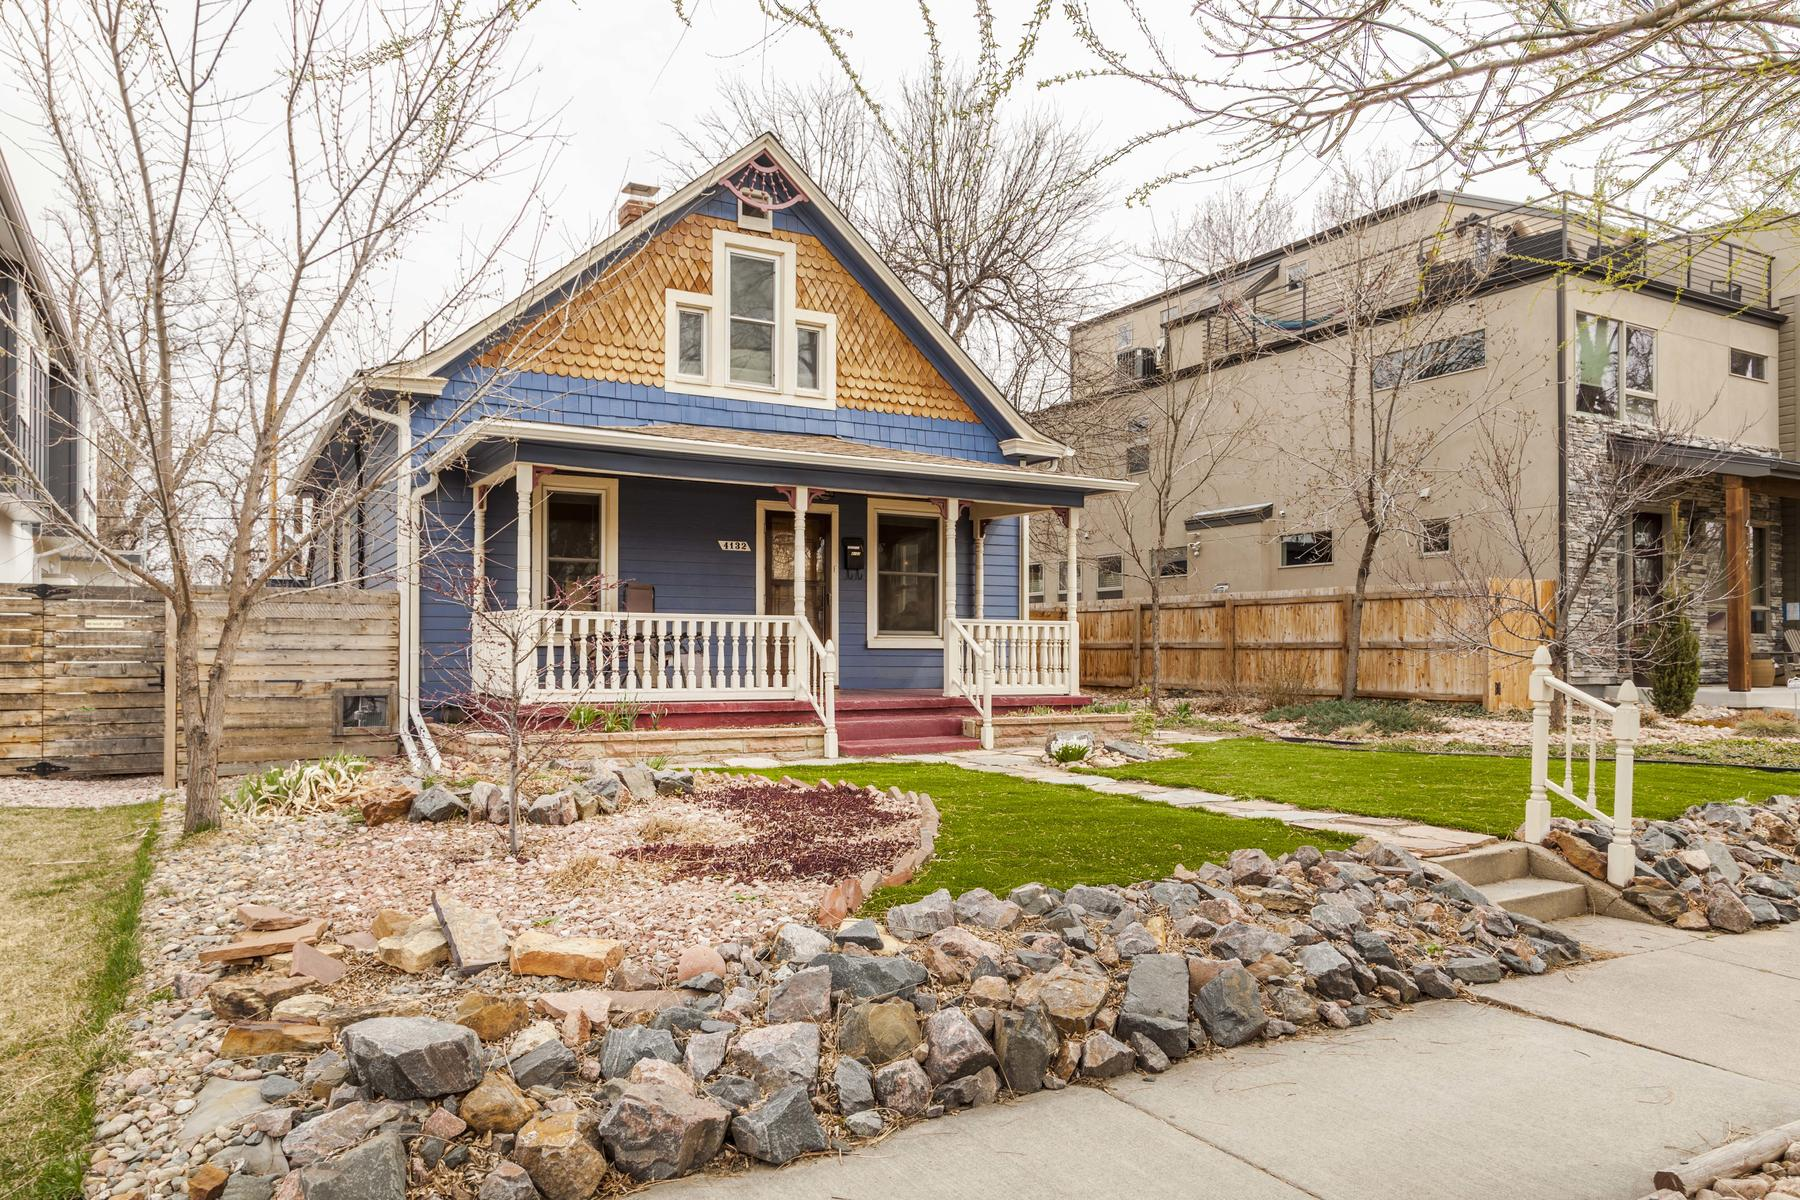 Single Family Home for Active at Charming bungalow in highly desirable Berkeley neighborhood. 4132 Vrain St Denver, Colorado 80212 United States